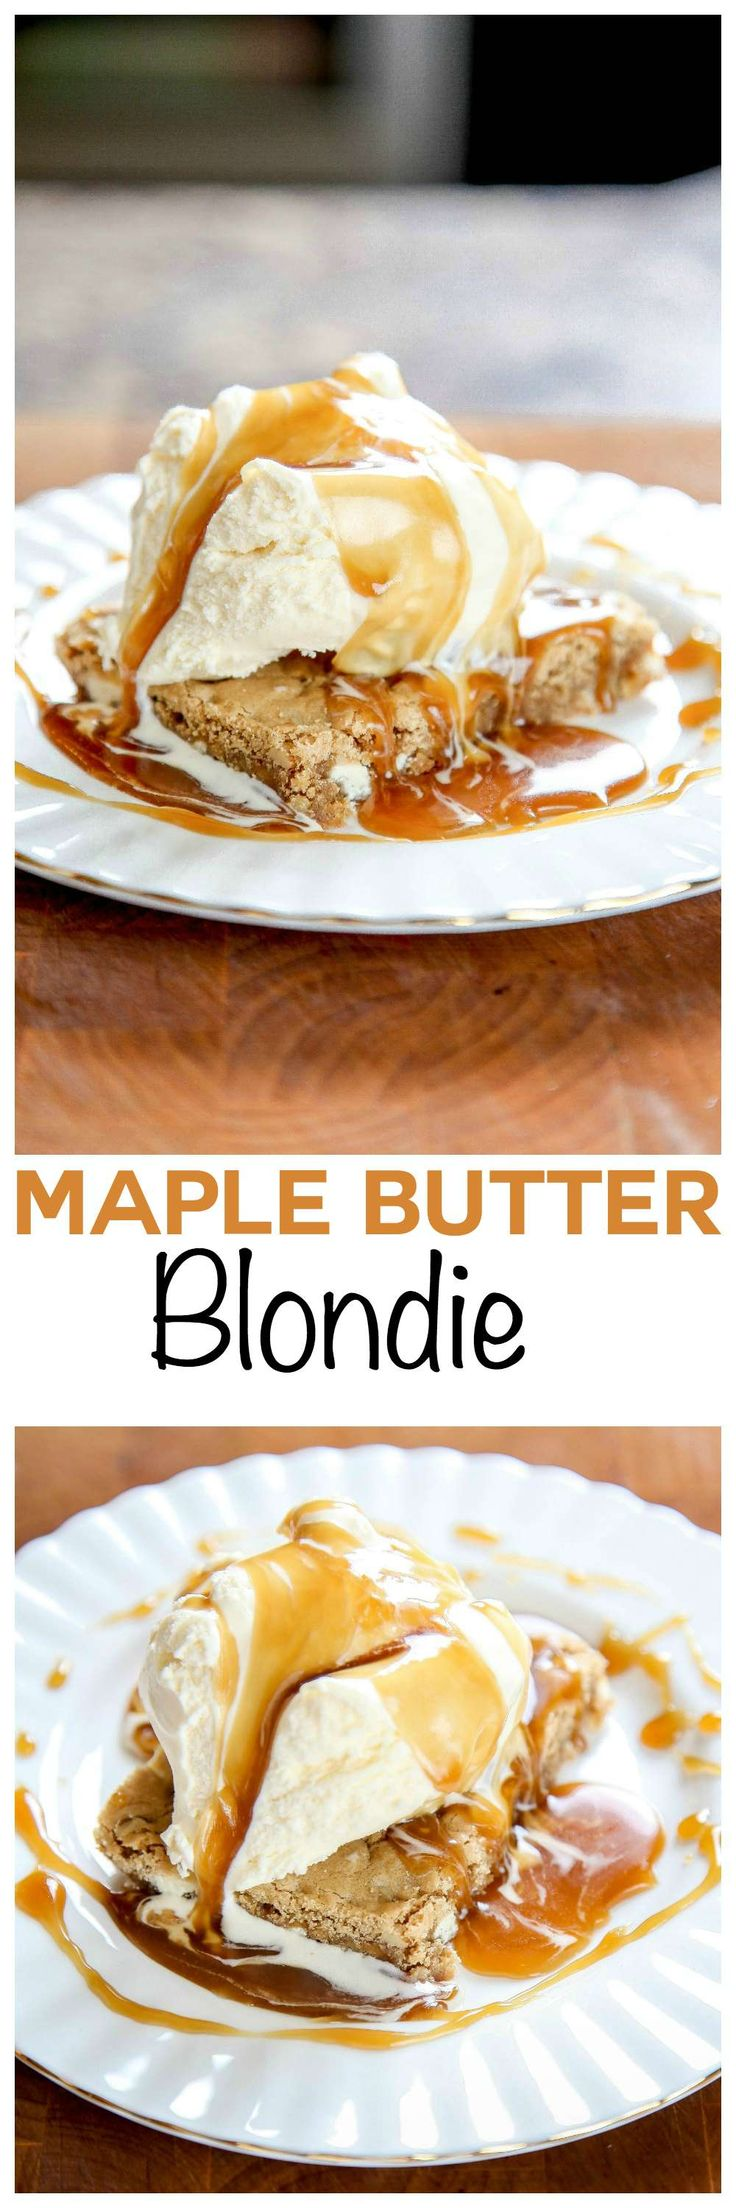 Chewy white chocolate walnut blondies topped with a sinful maple brown sugar sauce. The best Applebees Blondie Recipe that you can make at home anytime!